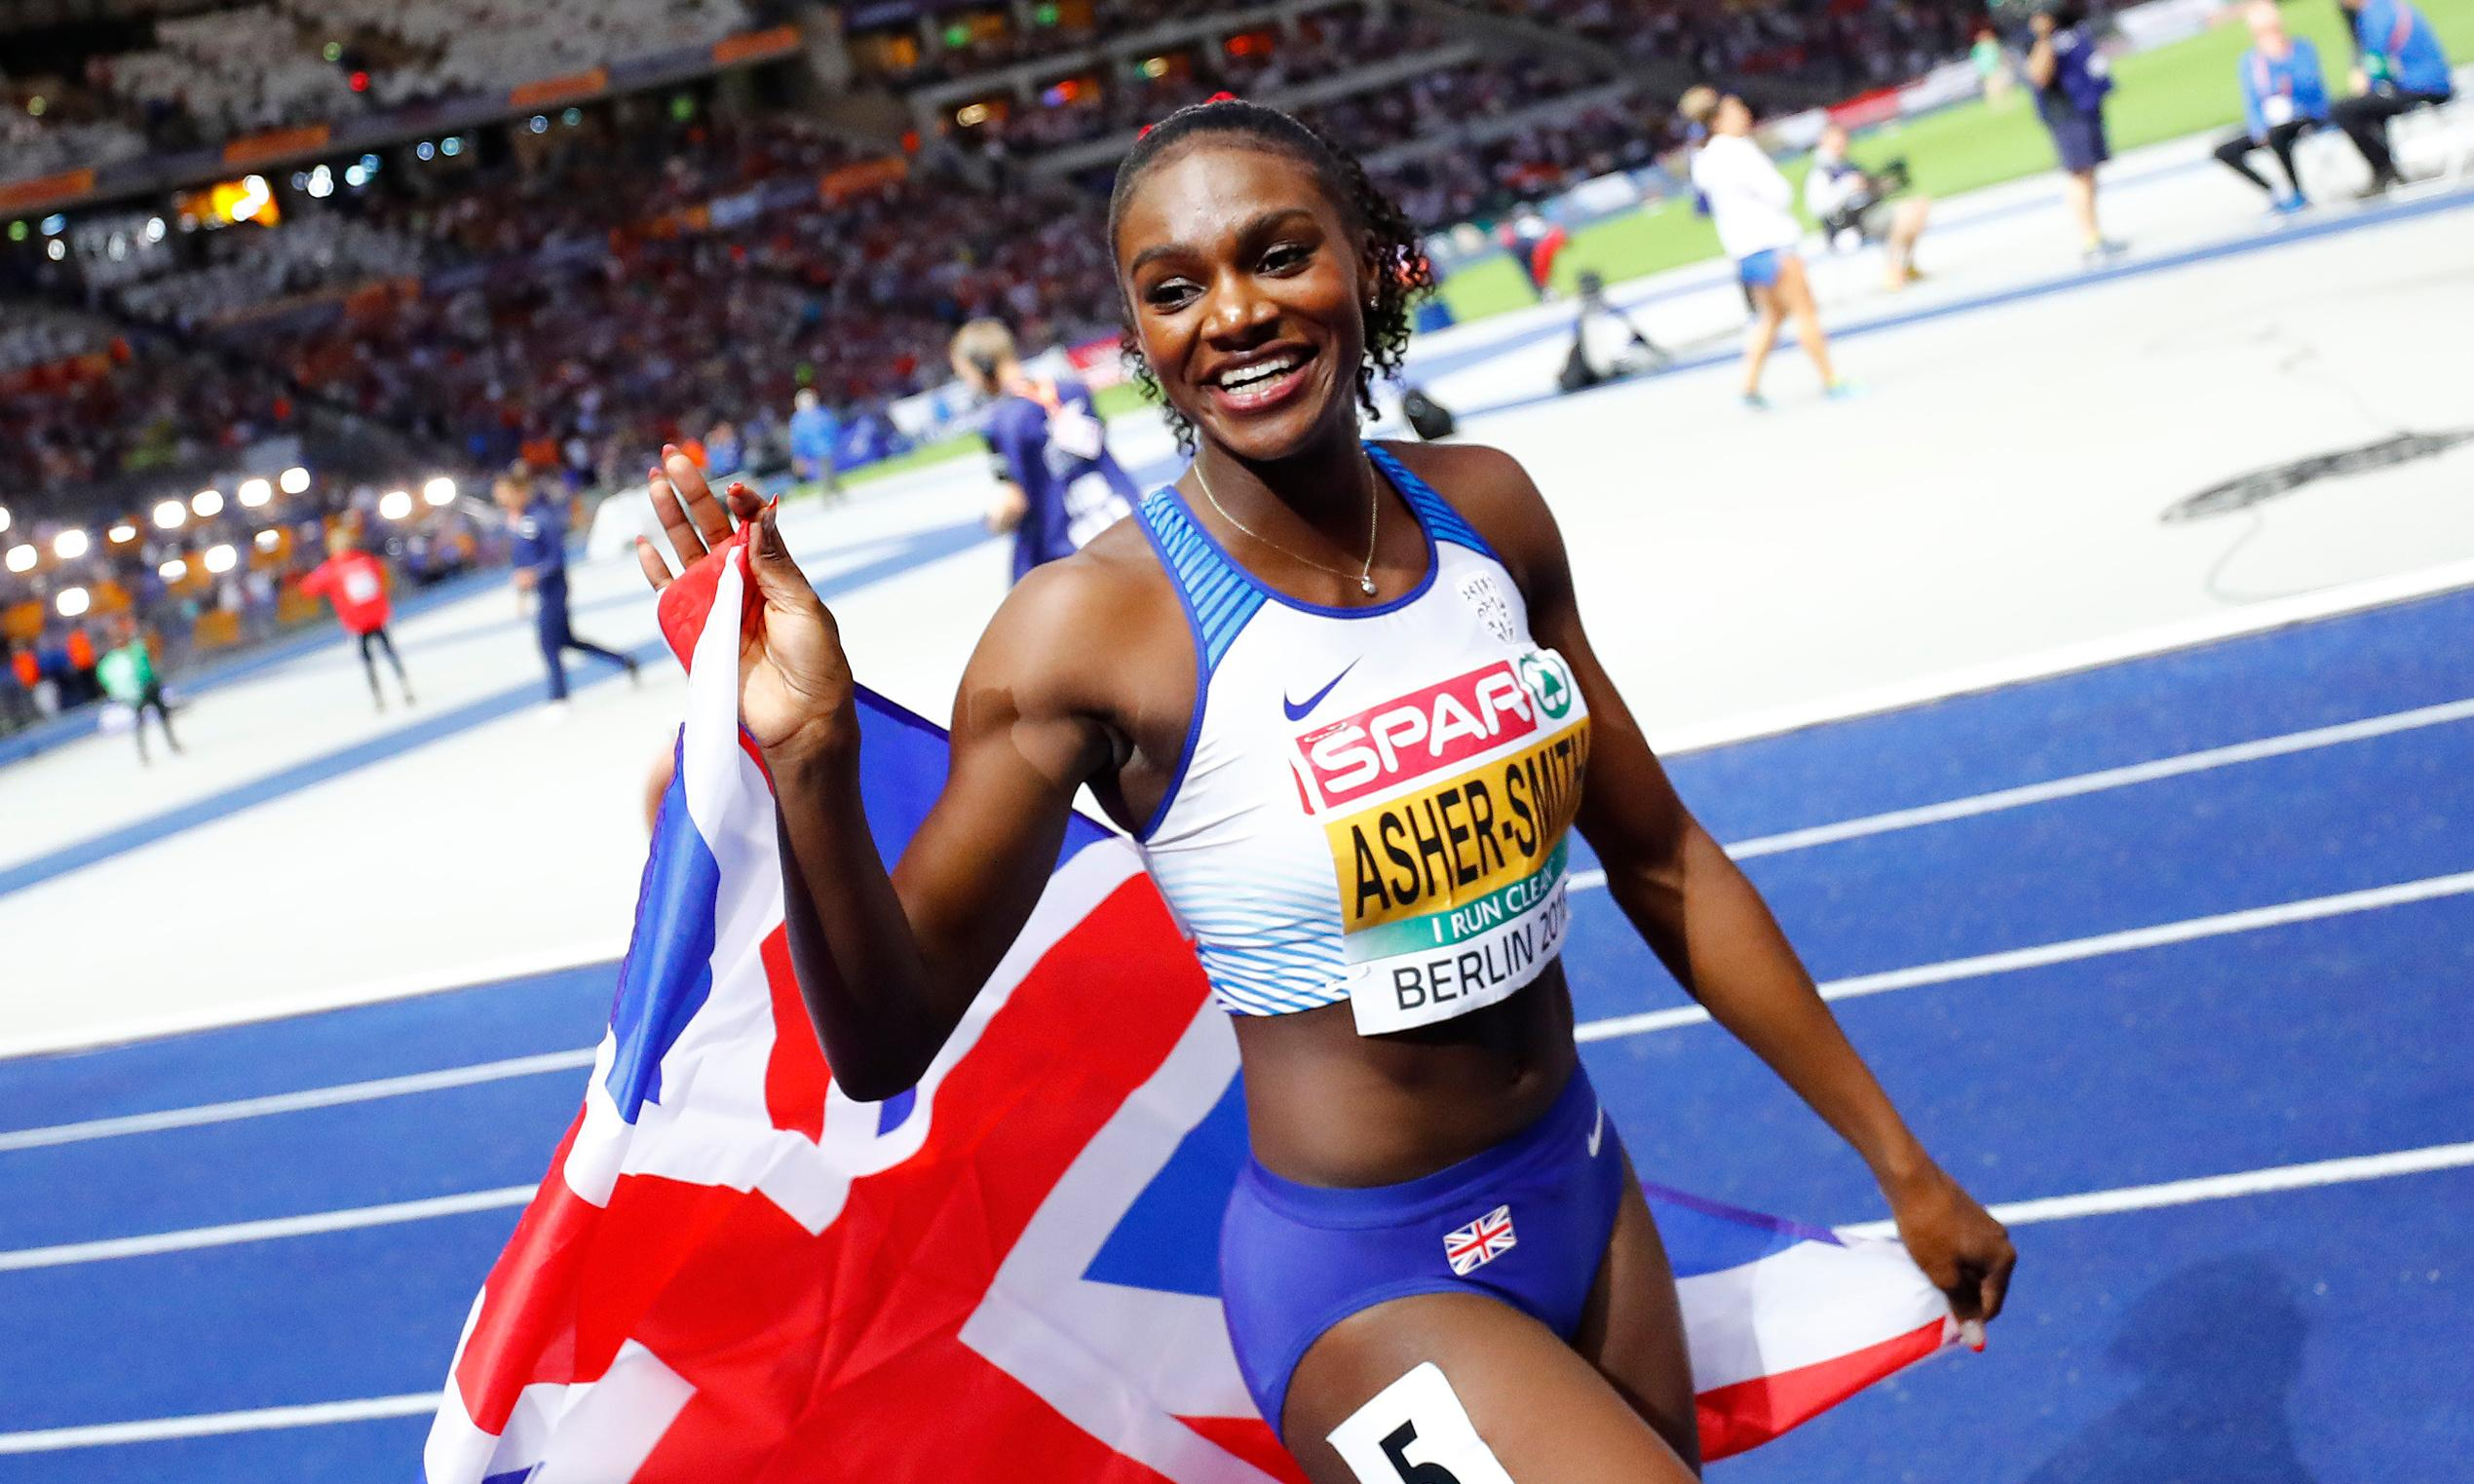 Dina Asher-Smith a real contender for BBC Sports Personality of the Year